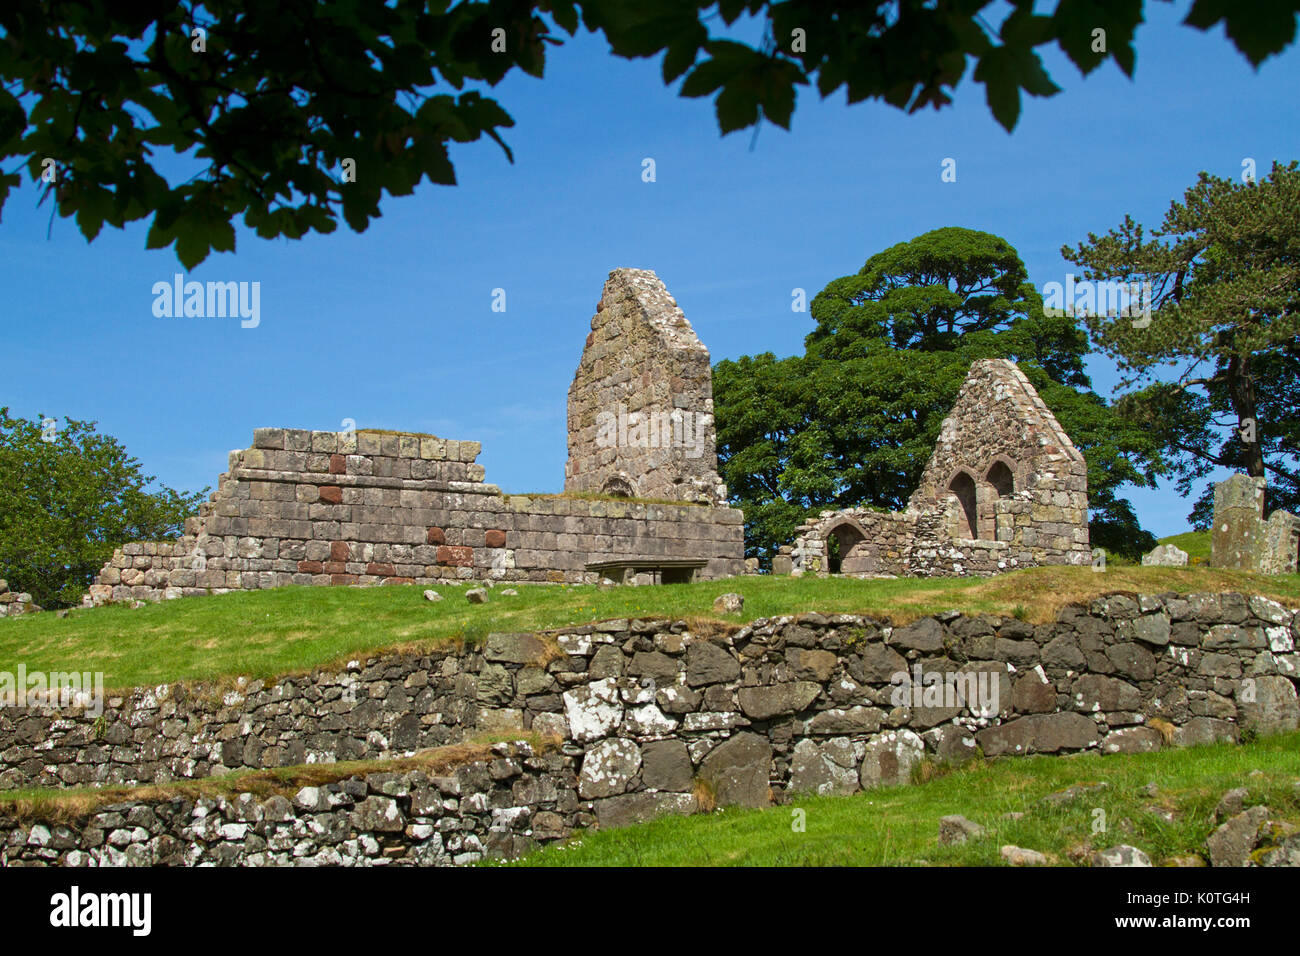 Ruins of historic 13th century Saint Blane's church and monastery against blue sky on island of Bute, Scotland - Stock Image